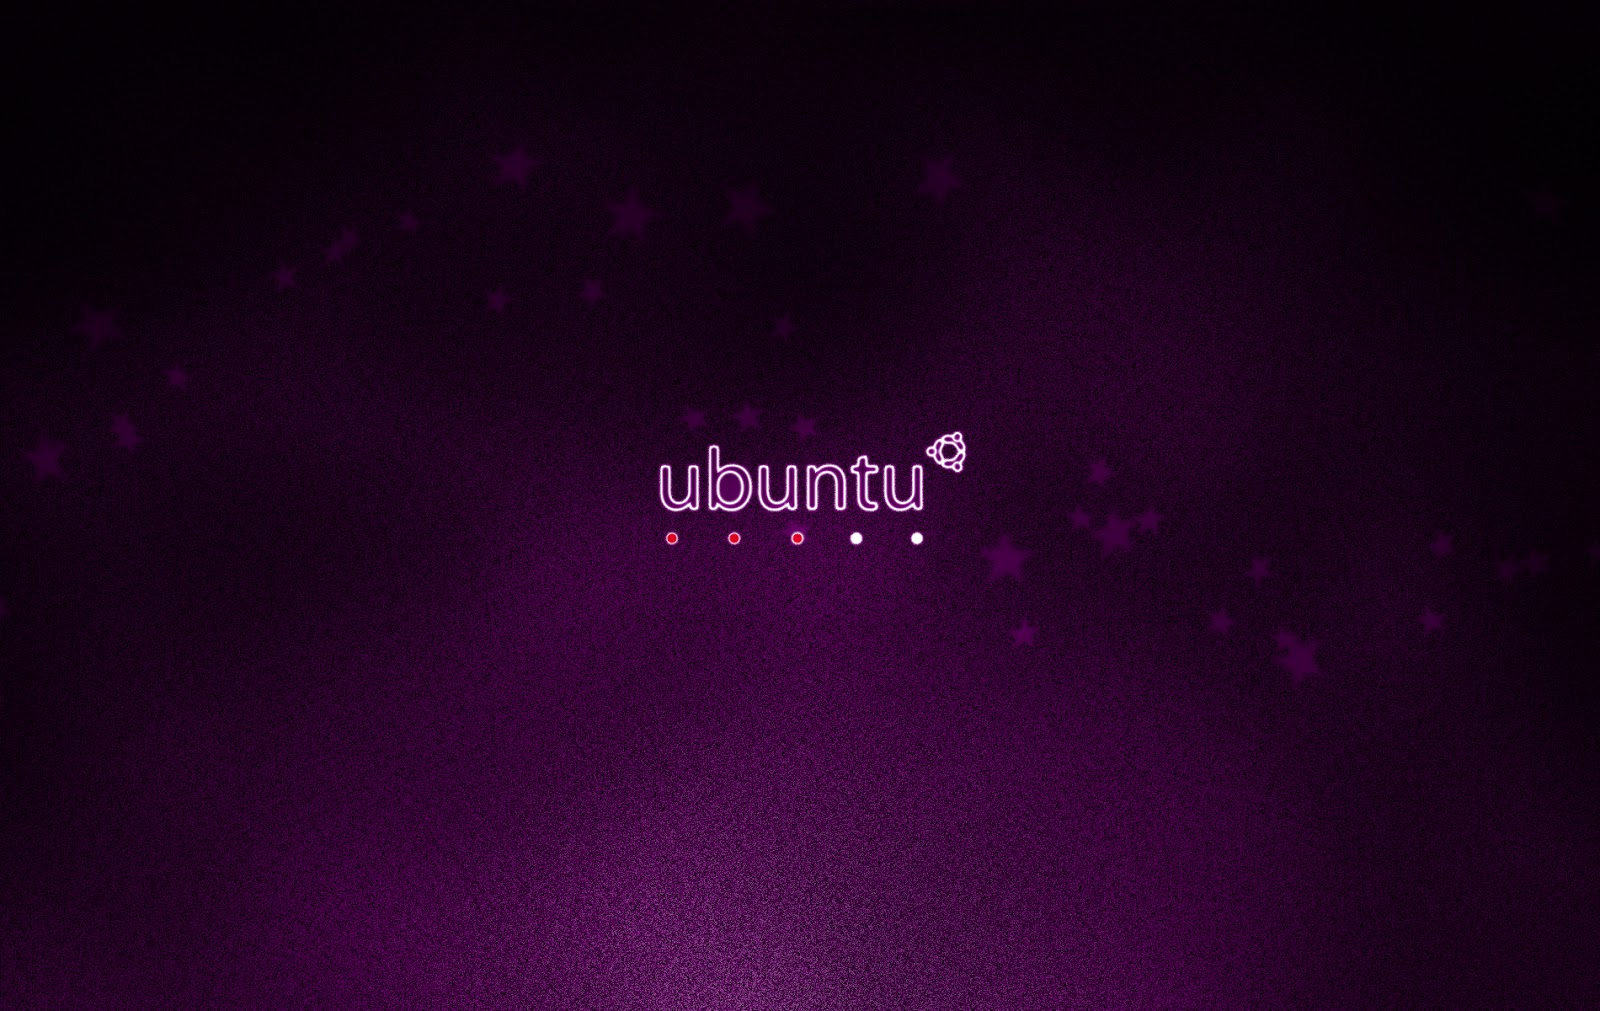 ubuntu hd wallpapers ubuntu hd wallpapers ubuntu hd wallpapers ubuntu 1600x1011